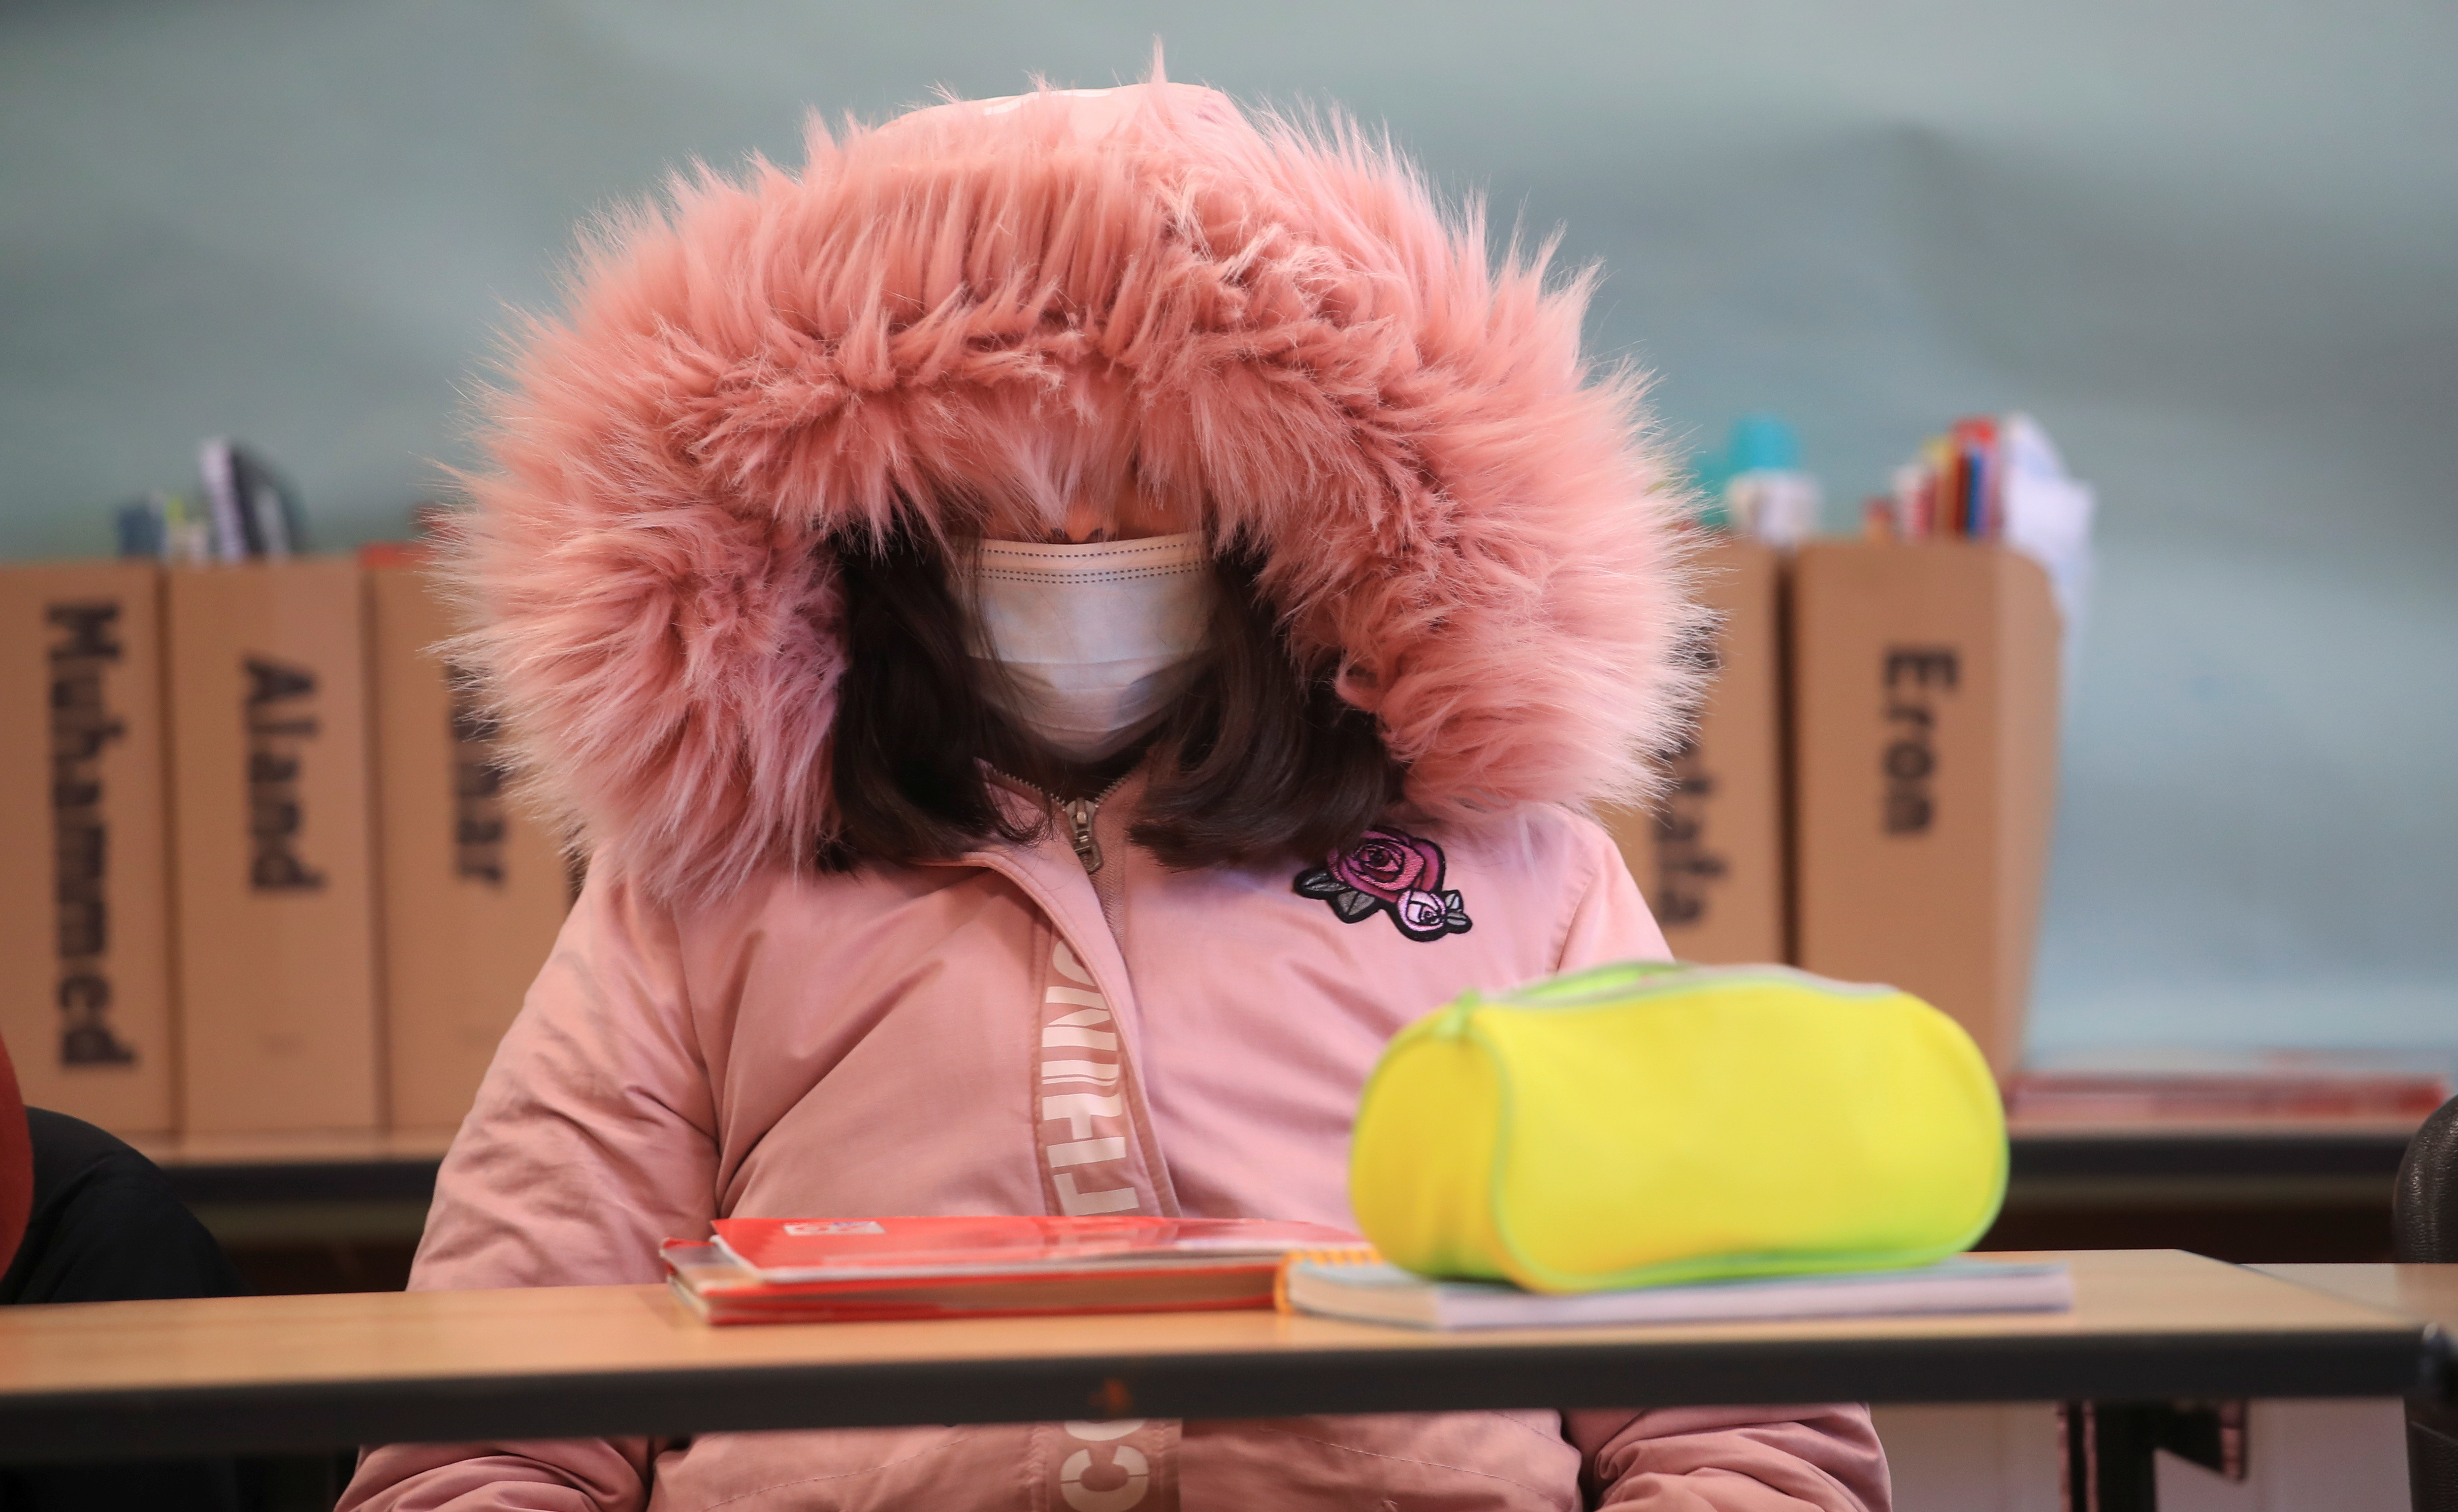 Schoolgirl of Freiherr-vom-Stein secondary school in the North Rhine-Westphalian city Bonn wears a winter outfit against the cold as school resumes with open windows and protective masks against the spread of COVID-19 following the autumn holidays in Germany, October 26, 2020. REUTERS/Wolfgang Rattay - RC2AQJ937173